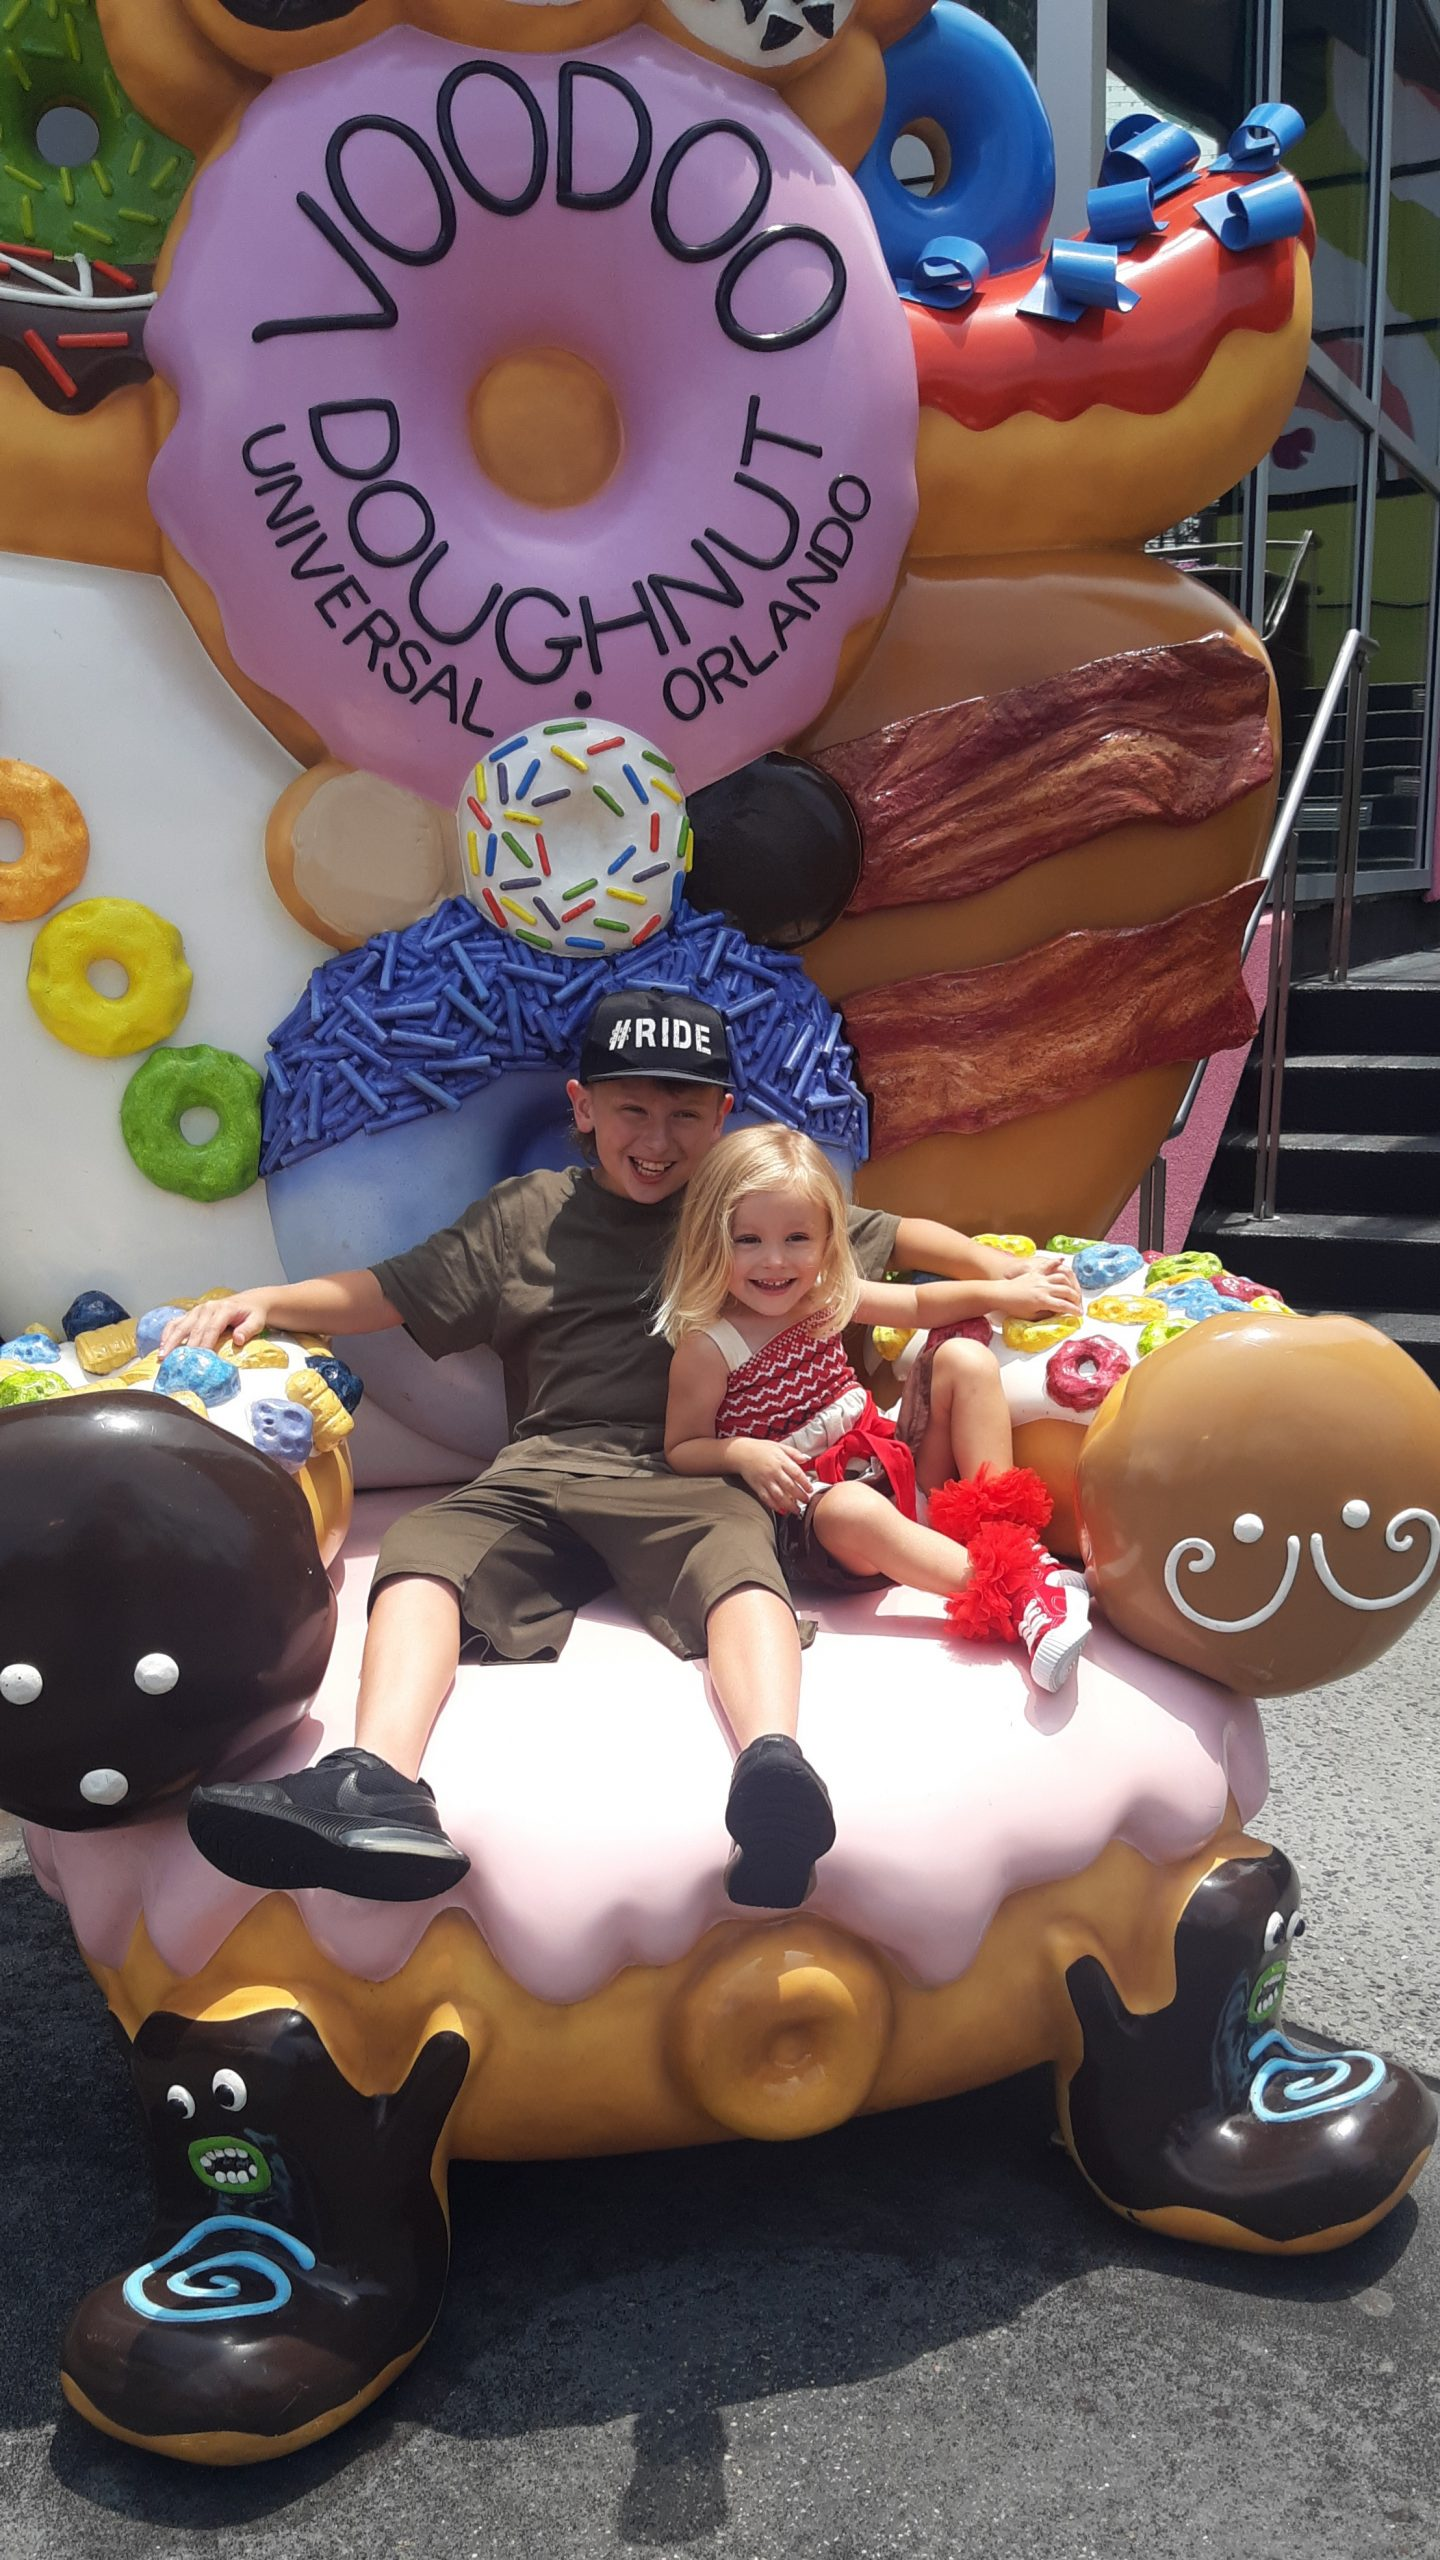 Ever have a Voodoo doughnut?